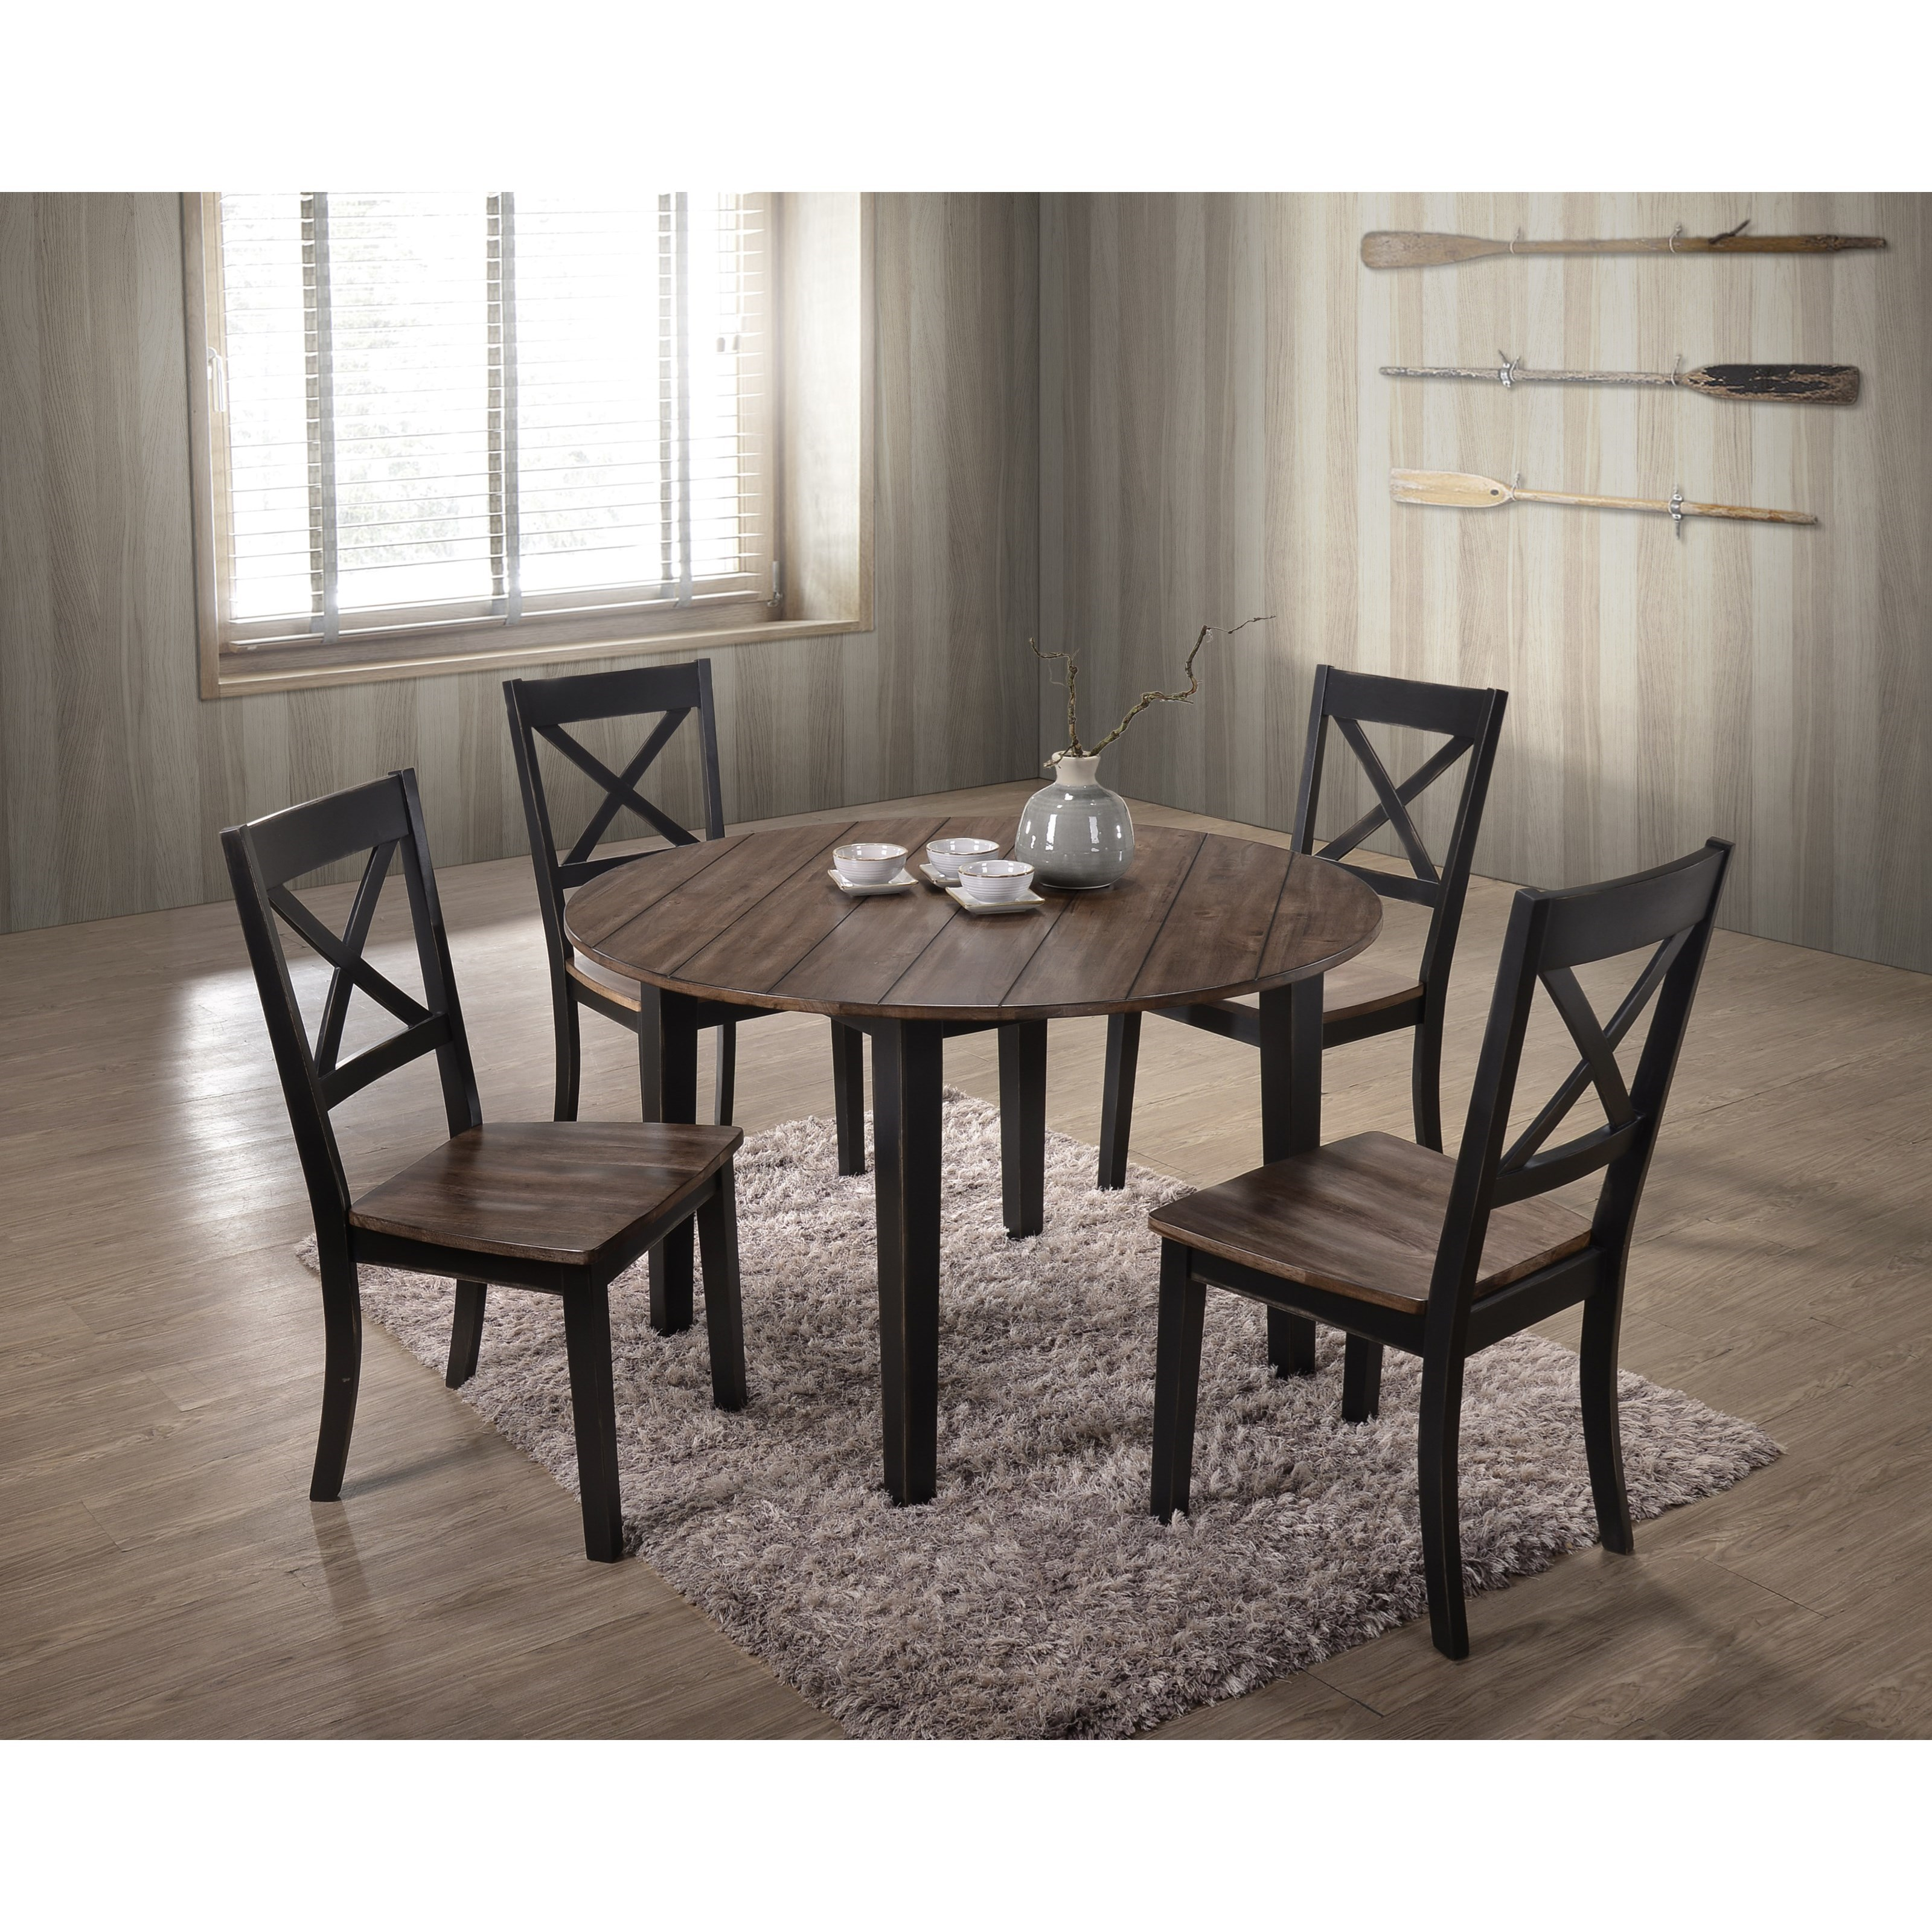 5058 5 Piece Table and Chair Set by Lane at Esprit Decor Home Furnishings